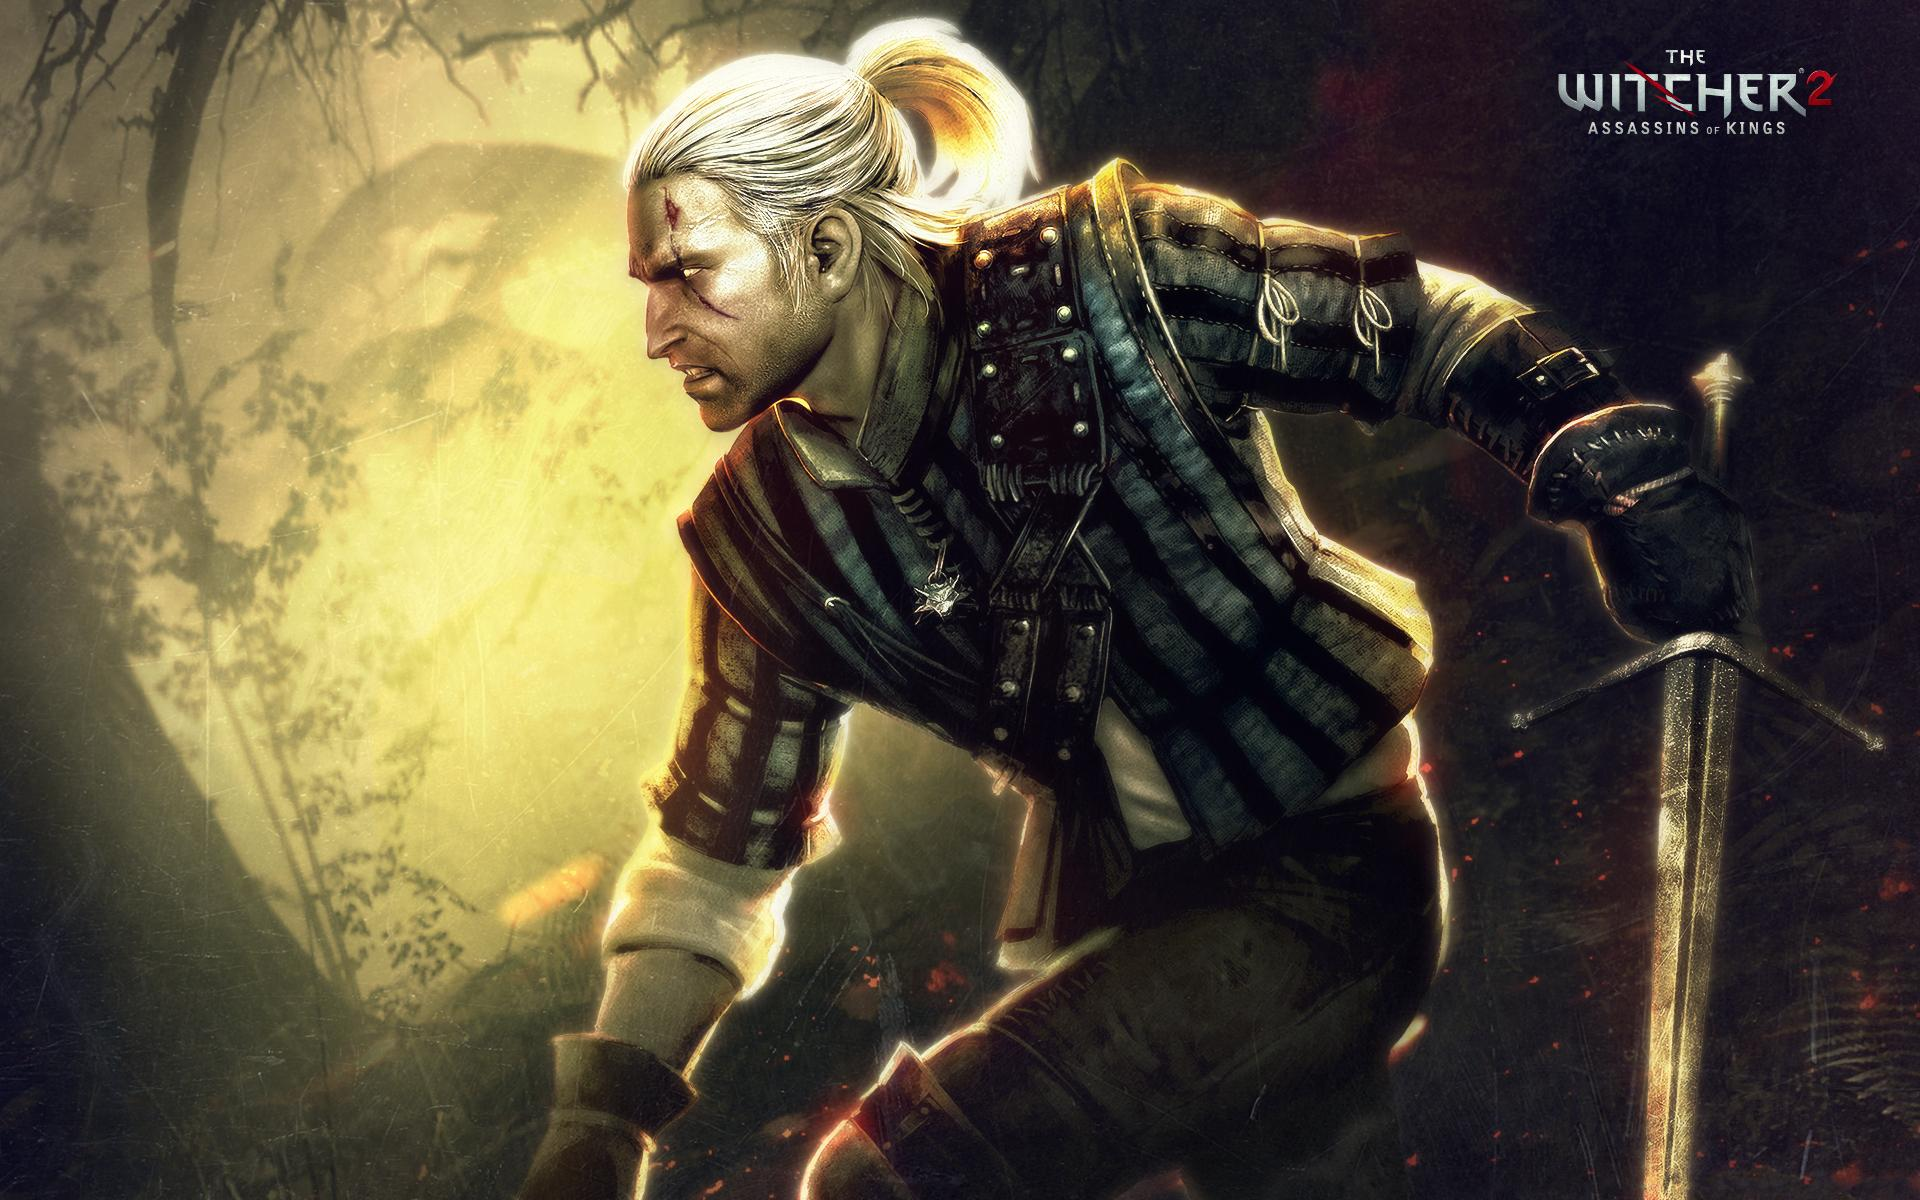 Photos The Witcher The Witcher 2 Assassins of Kings vdeo game 1920x1200